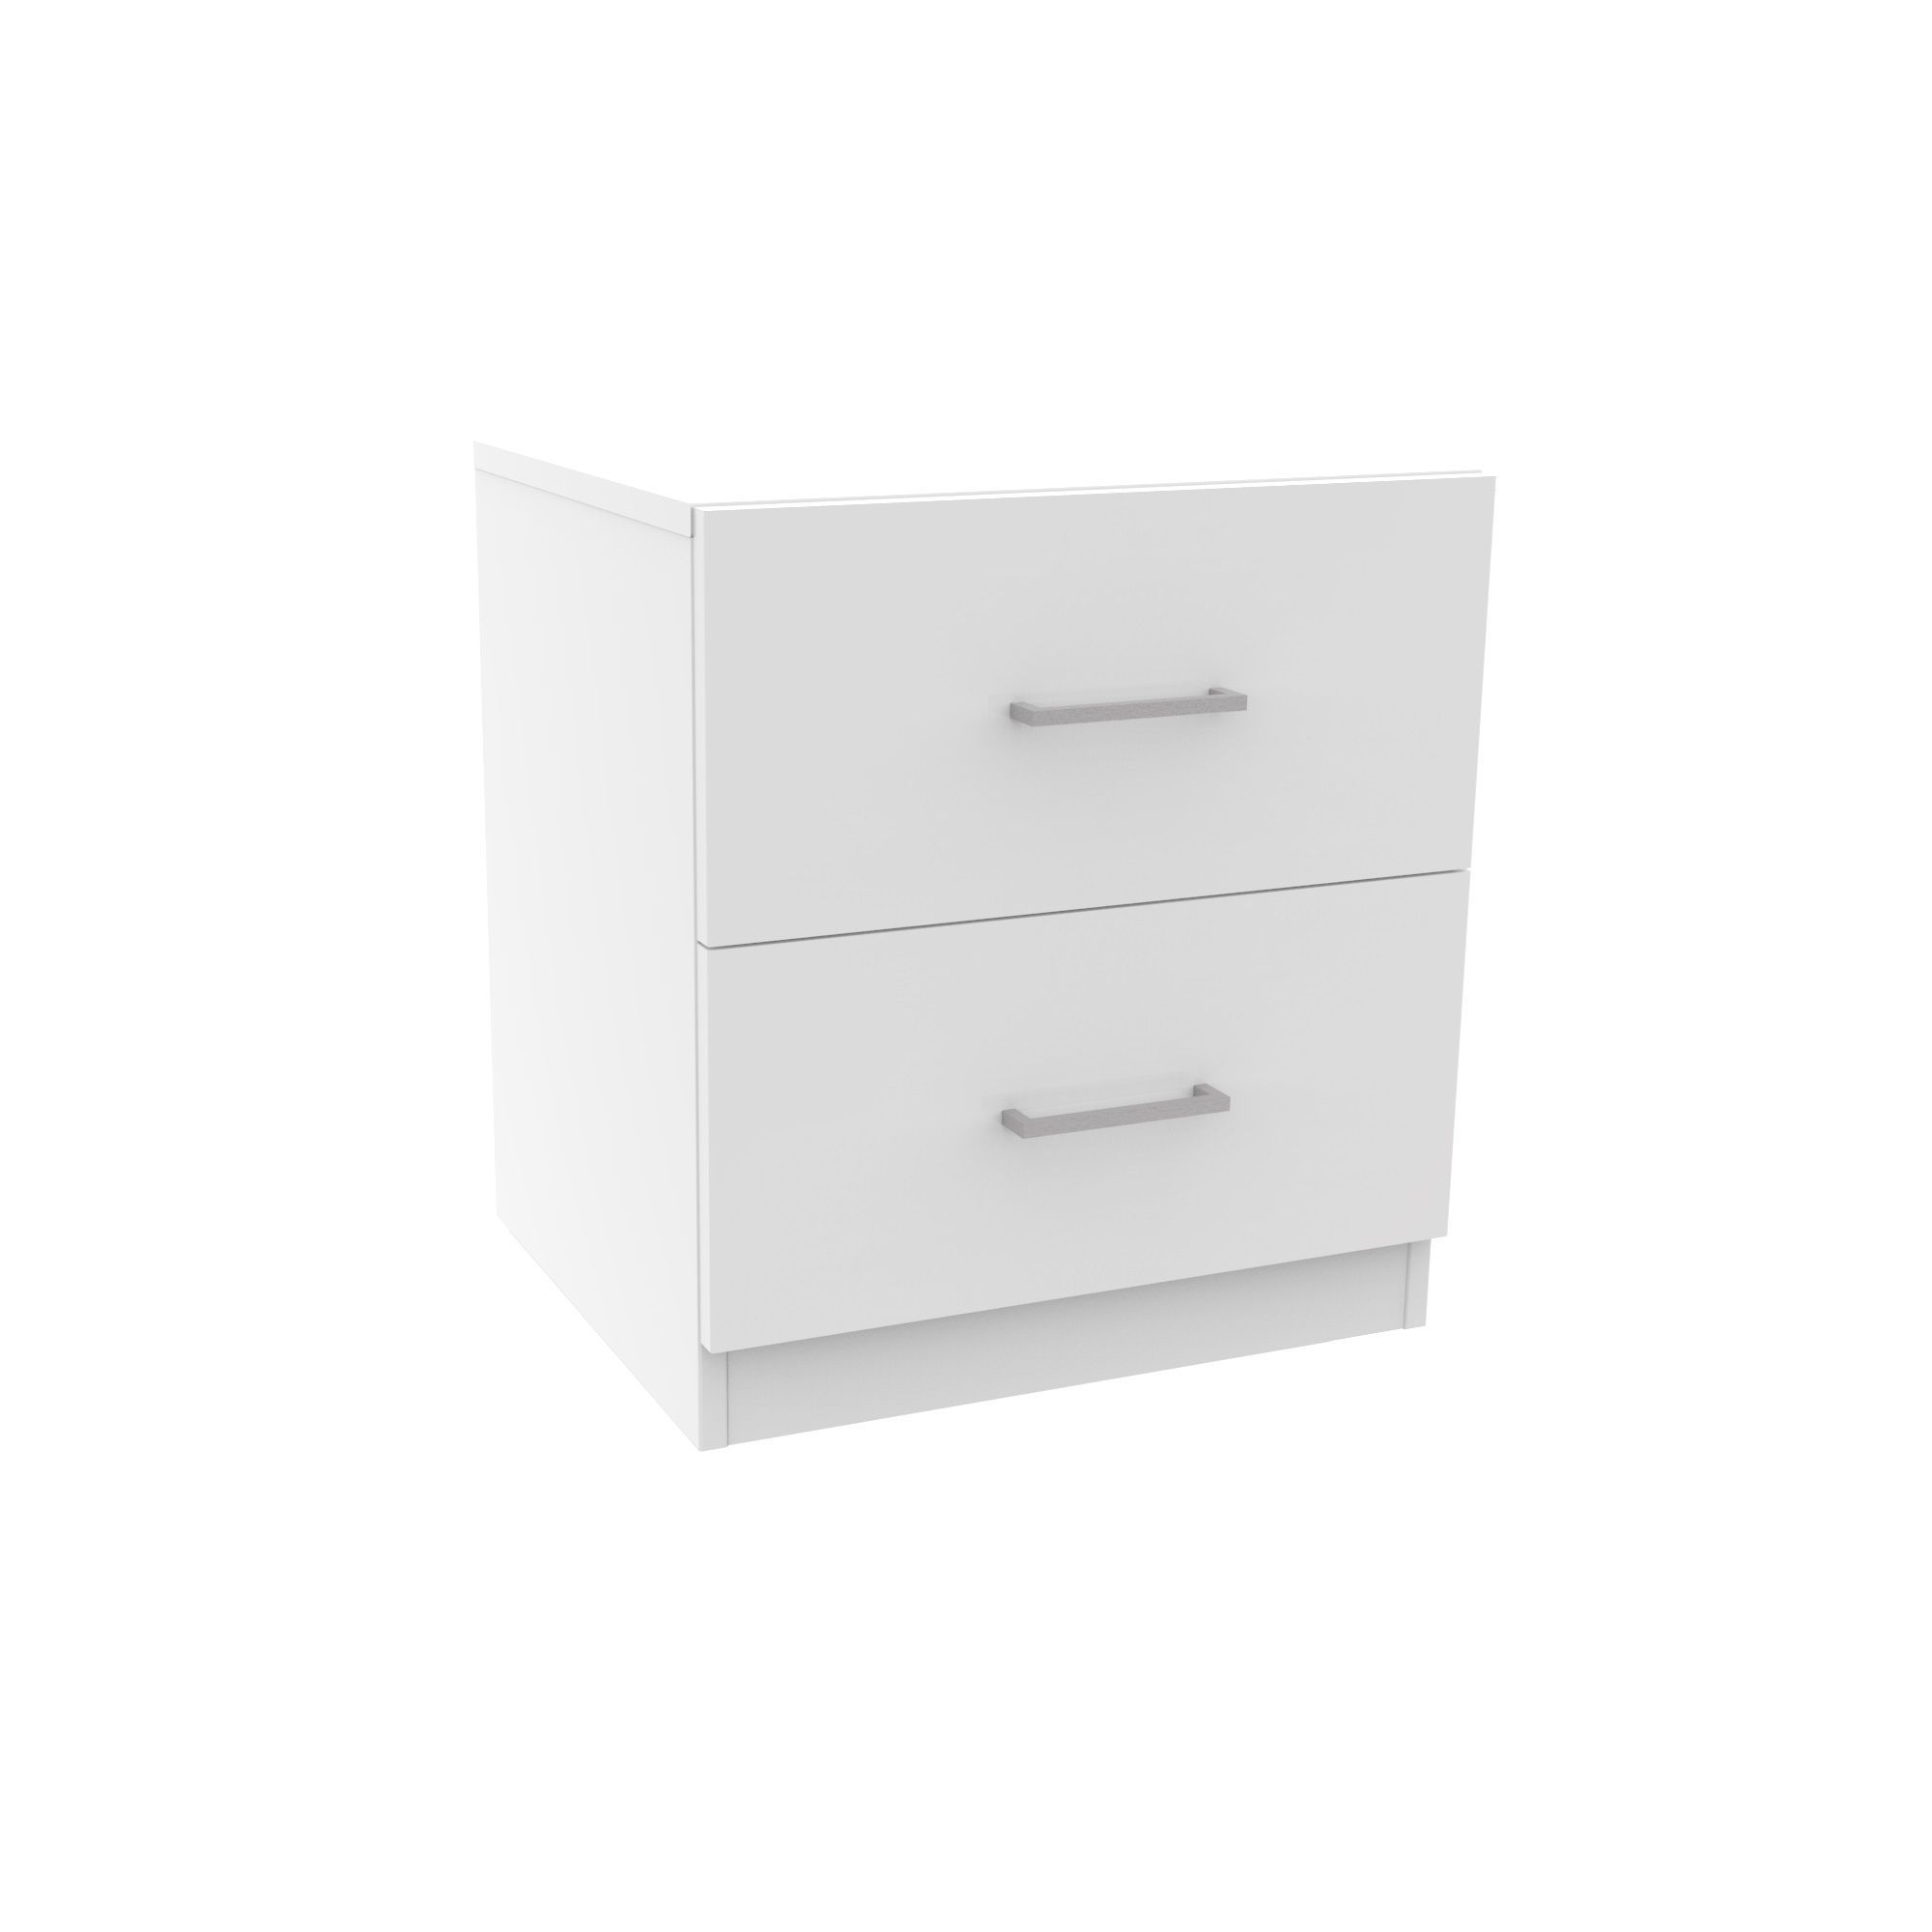 Darwin Gloss White 2 Drawer Bedside Chest H 548mm W 500mm D 420mm Departments Diy At B Q